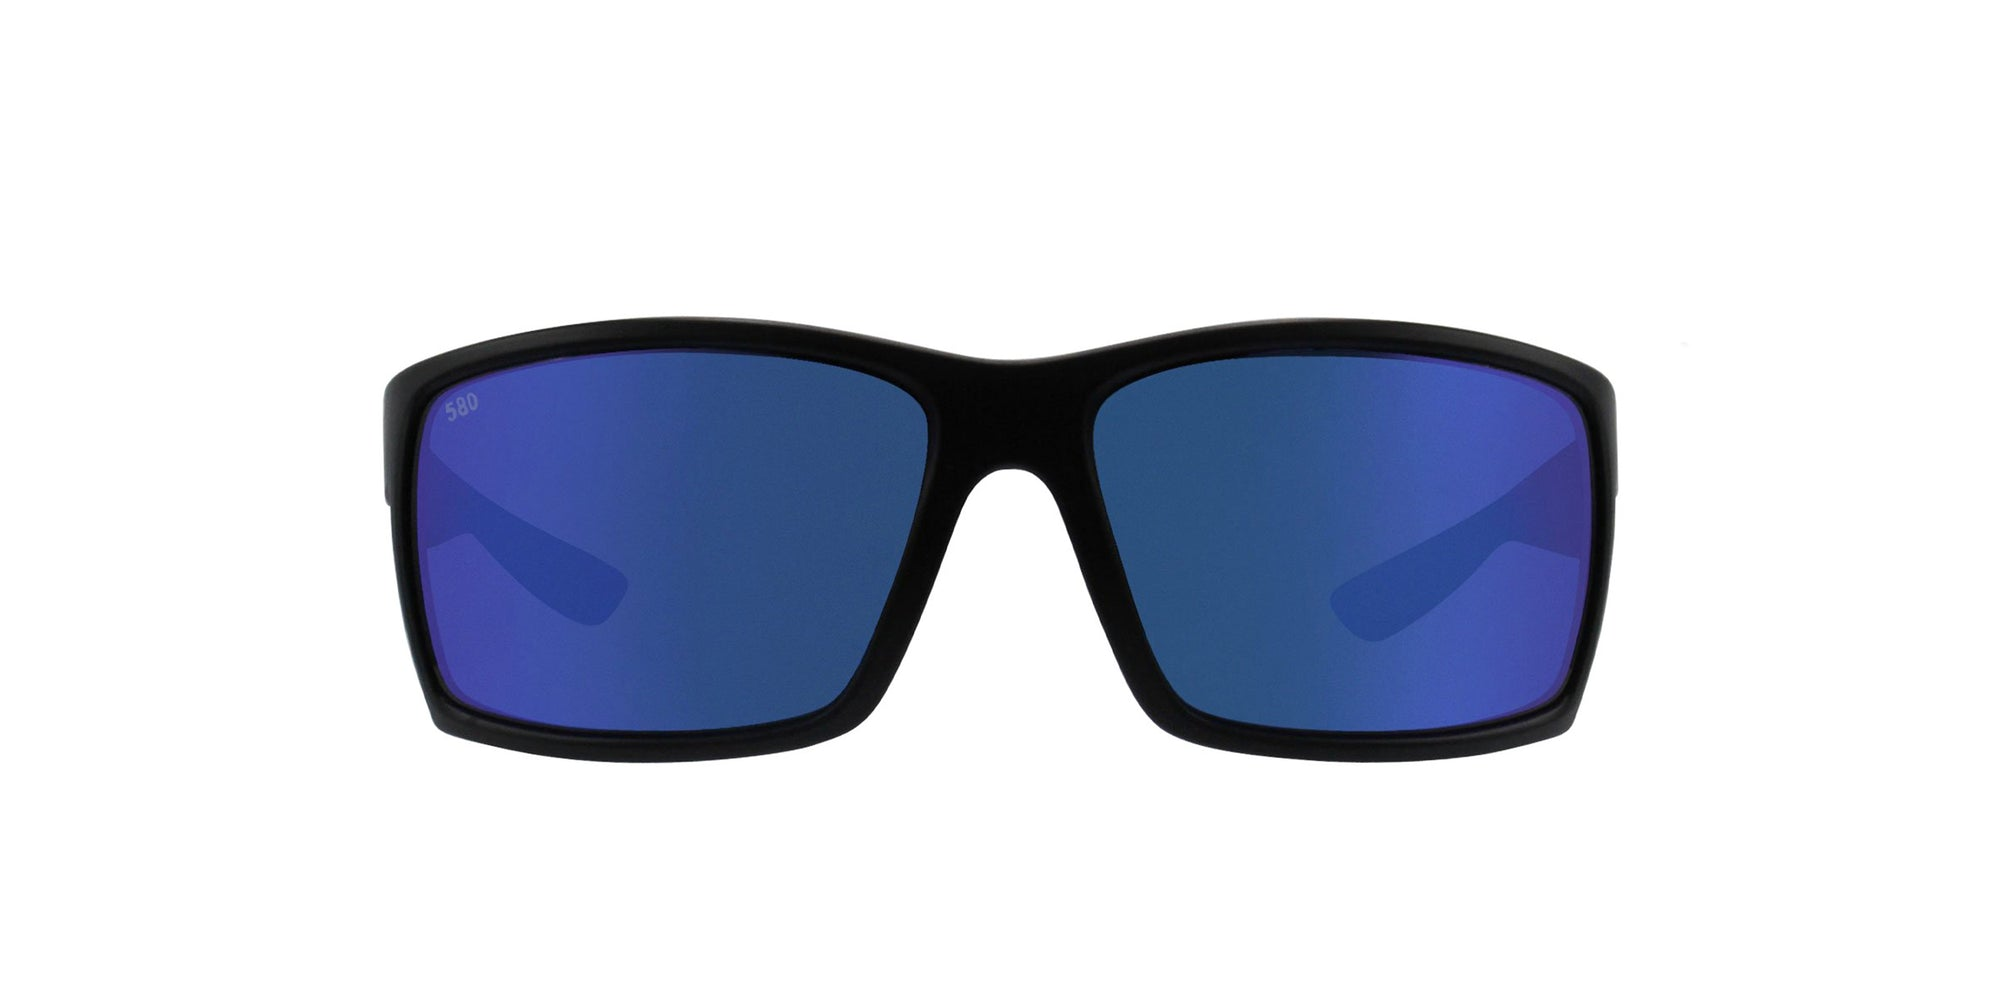 Costa Del Mar - Reefton Black/Blue Mirror Polarized Rectangular Men Sunglasses-Sunglasses-Designer Eyes